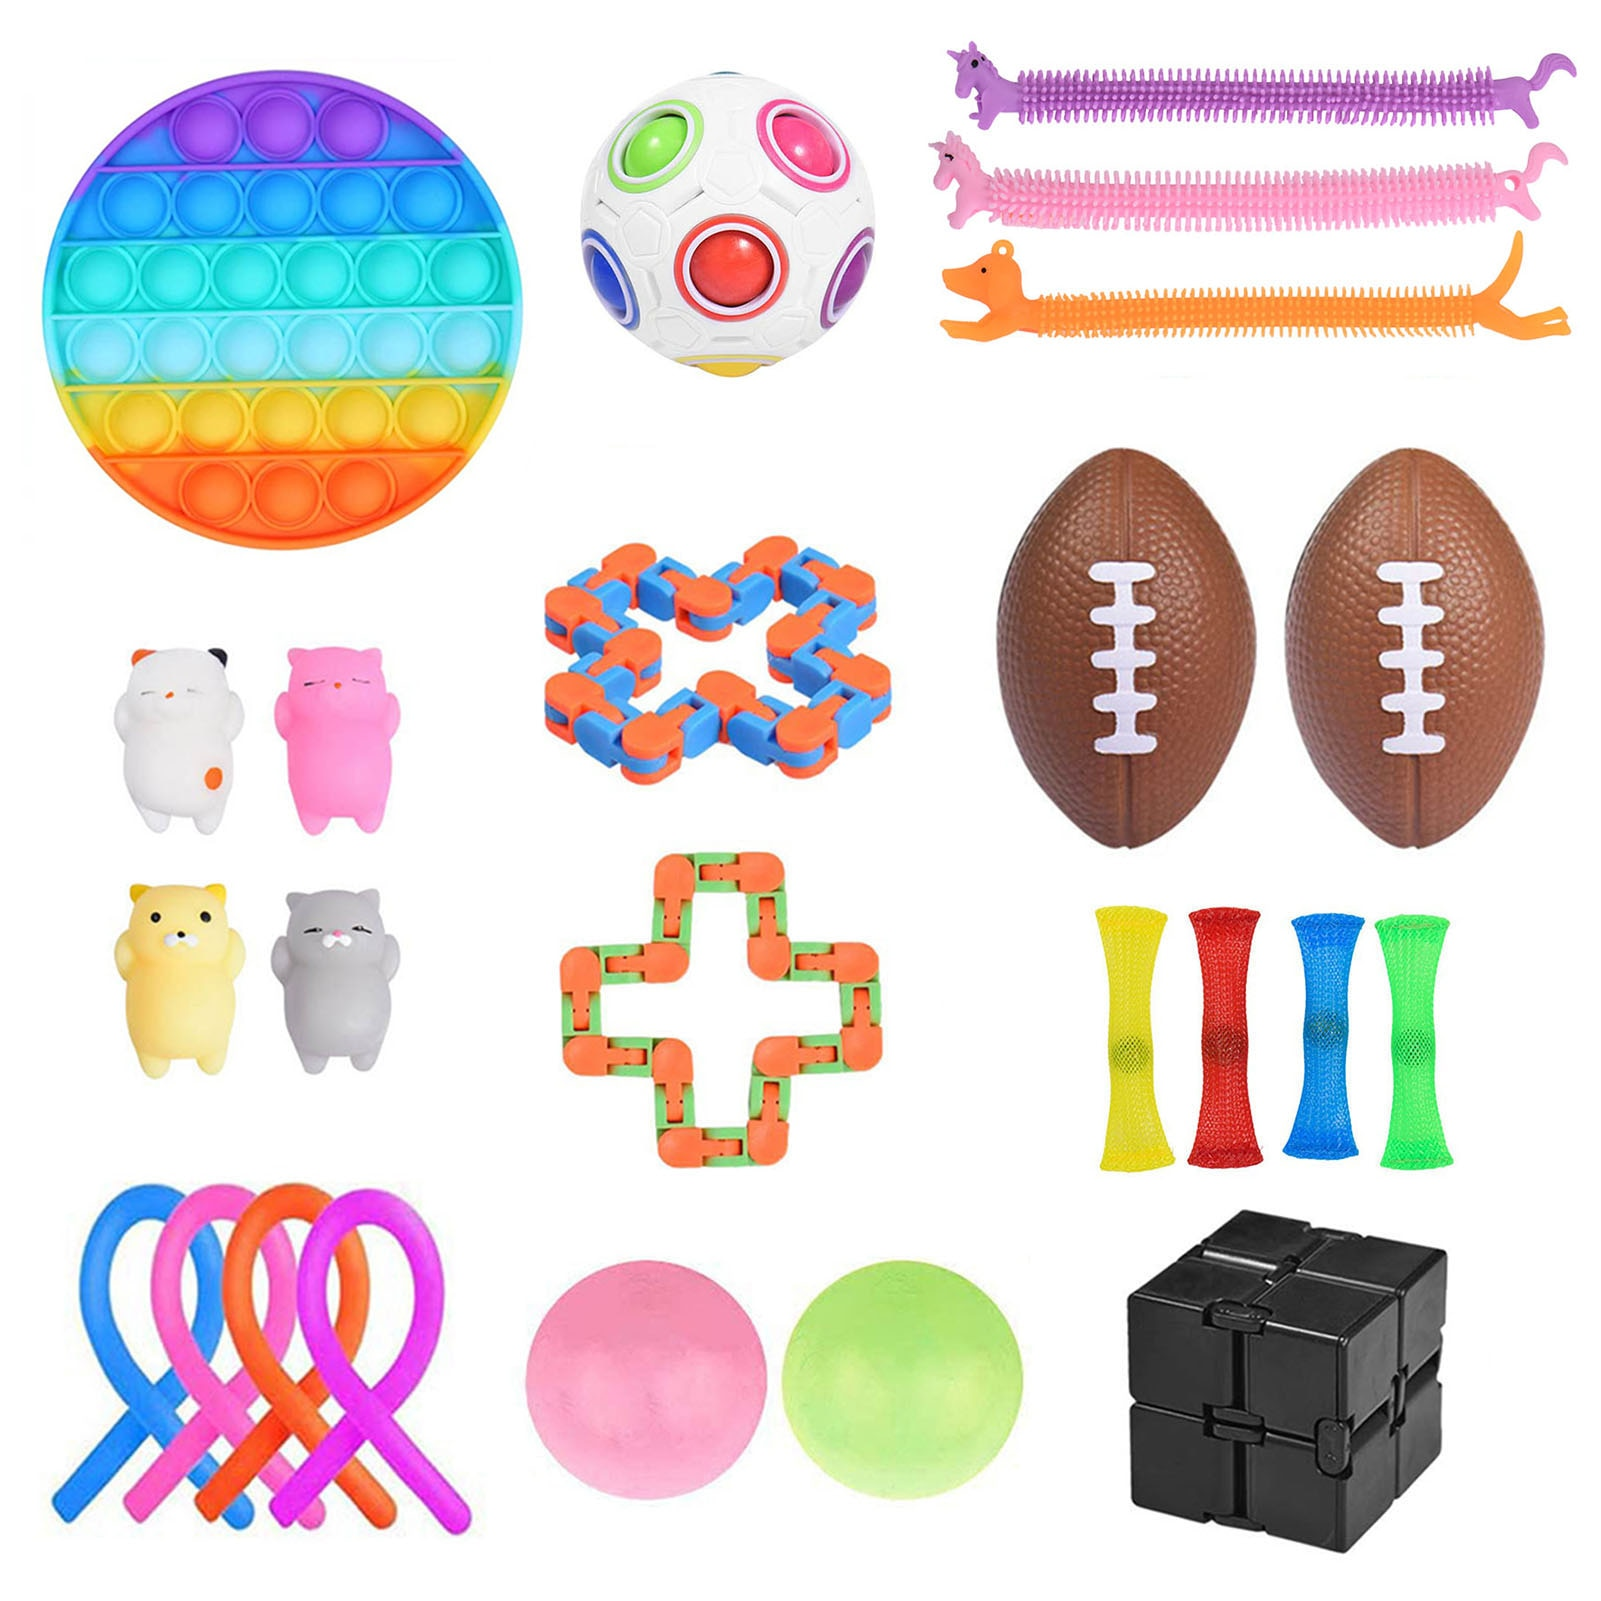 24PCS Sensory Fidget Toys Silicone Stress Relief Anti-Anxiety Toy Bubble Push Sensor Fidget Toy Educational Decompression Toys enlarge